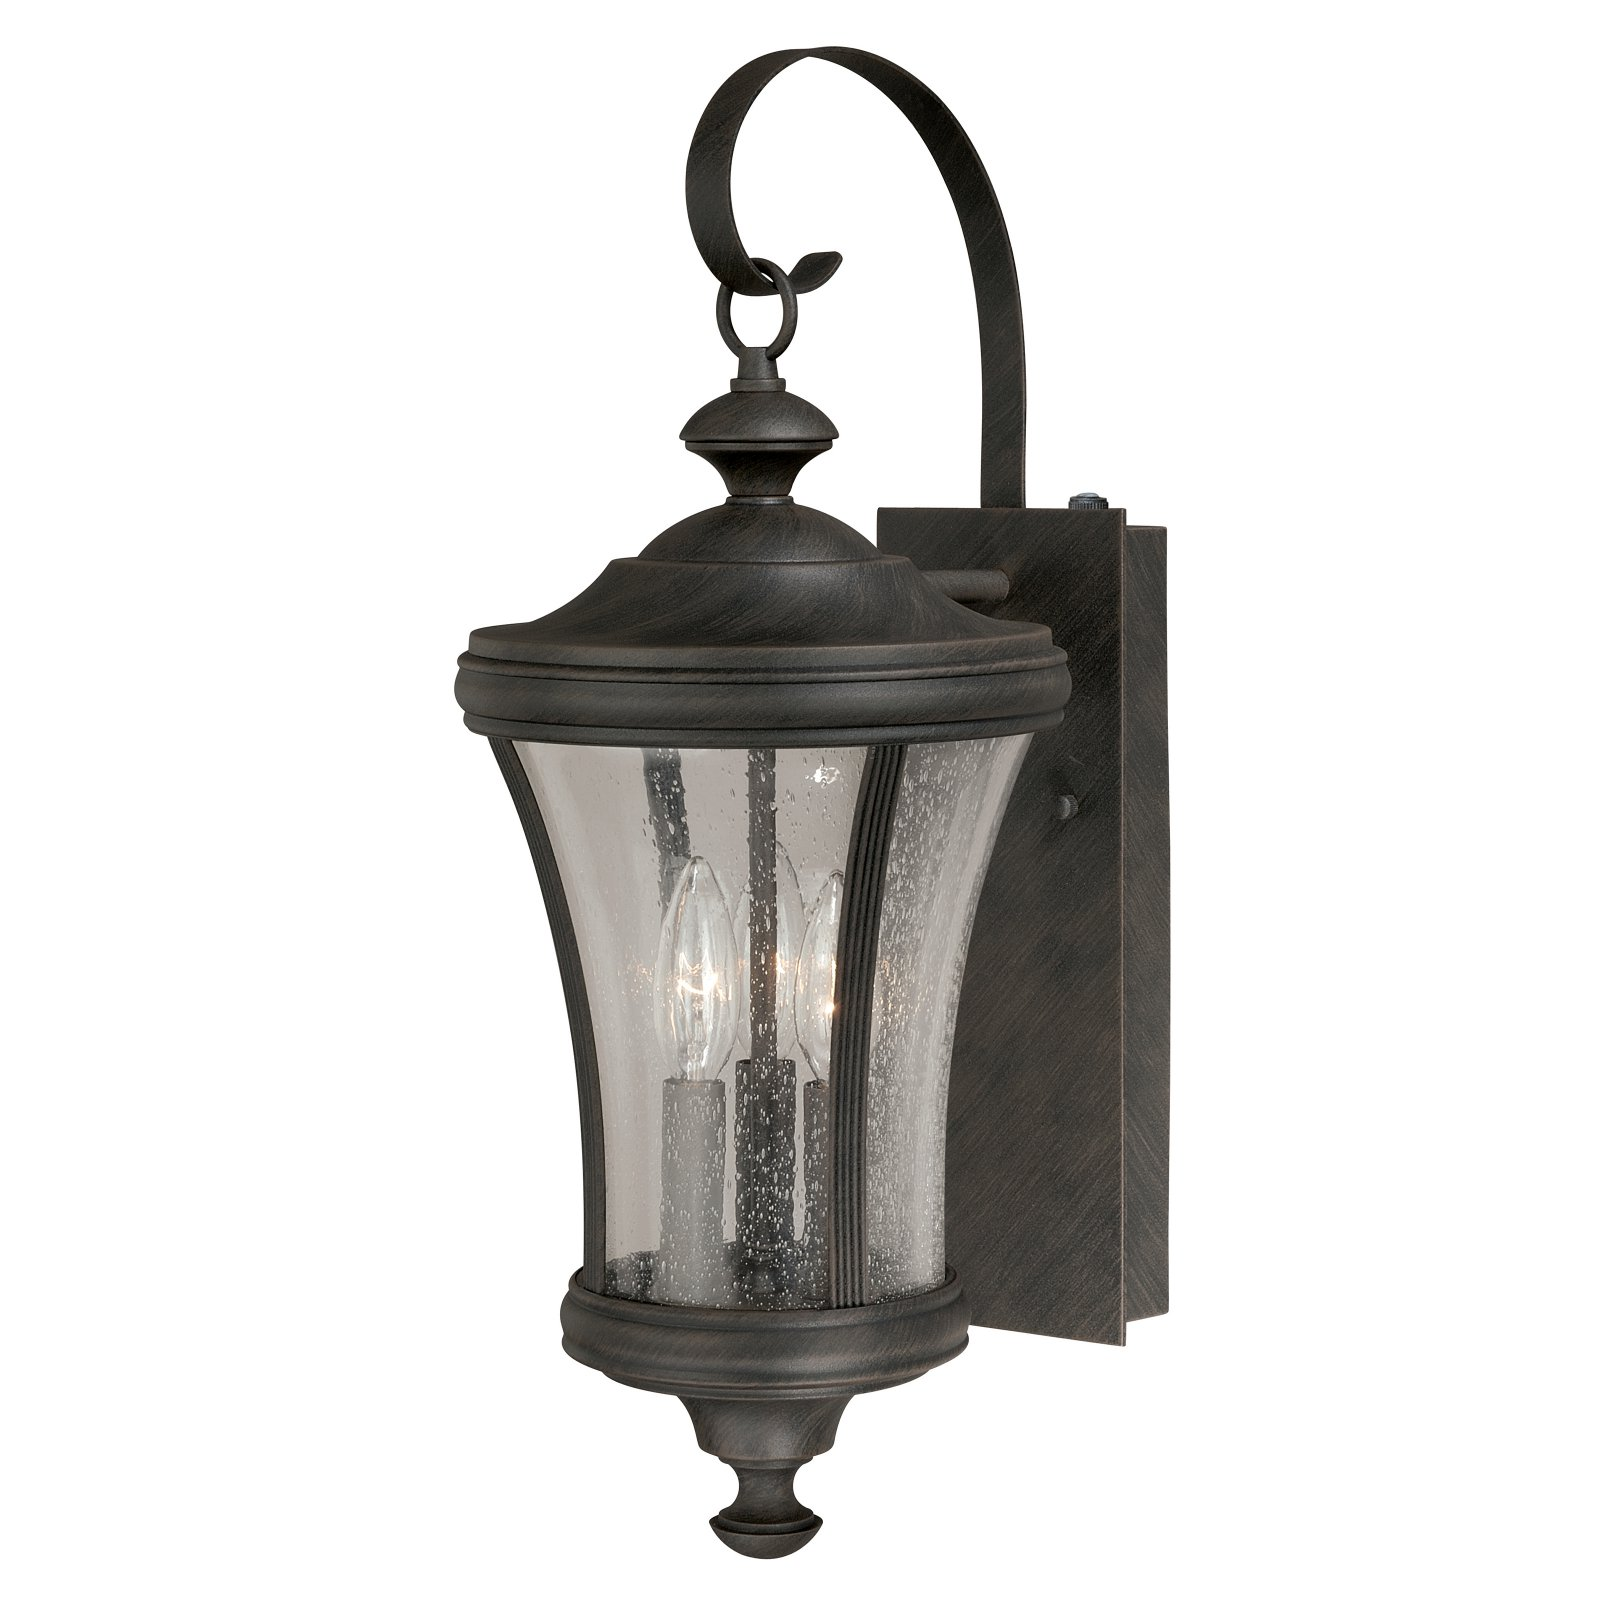 Vaxcel Hanover T014 Outdoor Wall Sconce